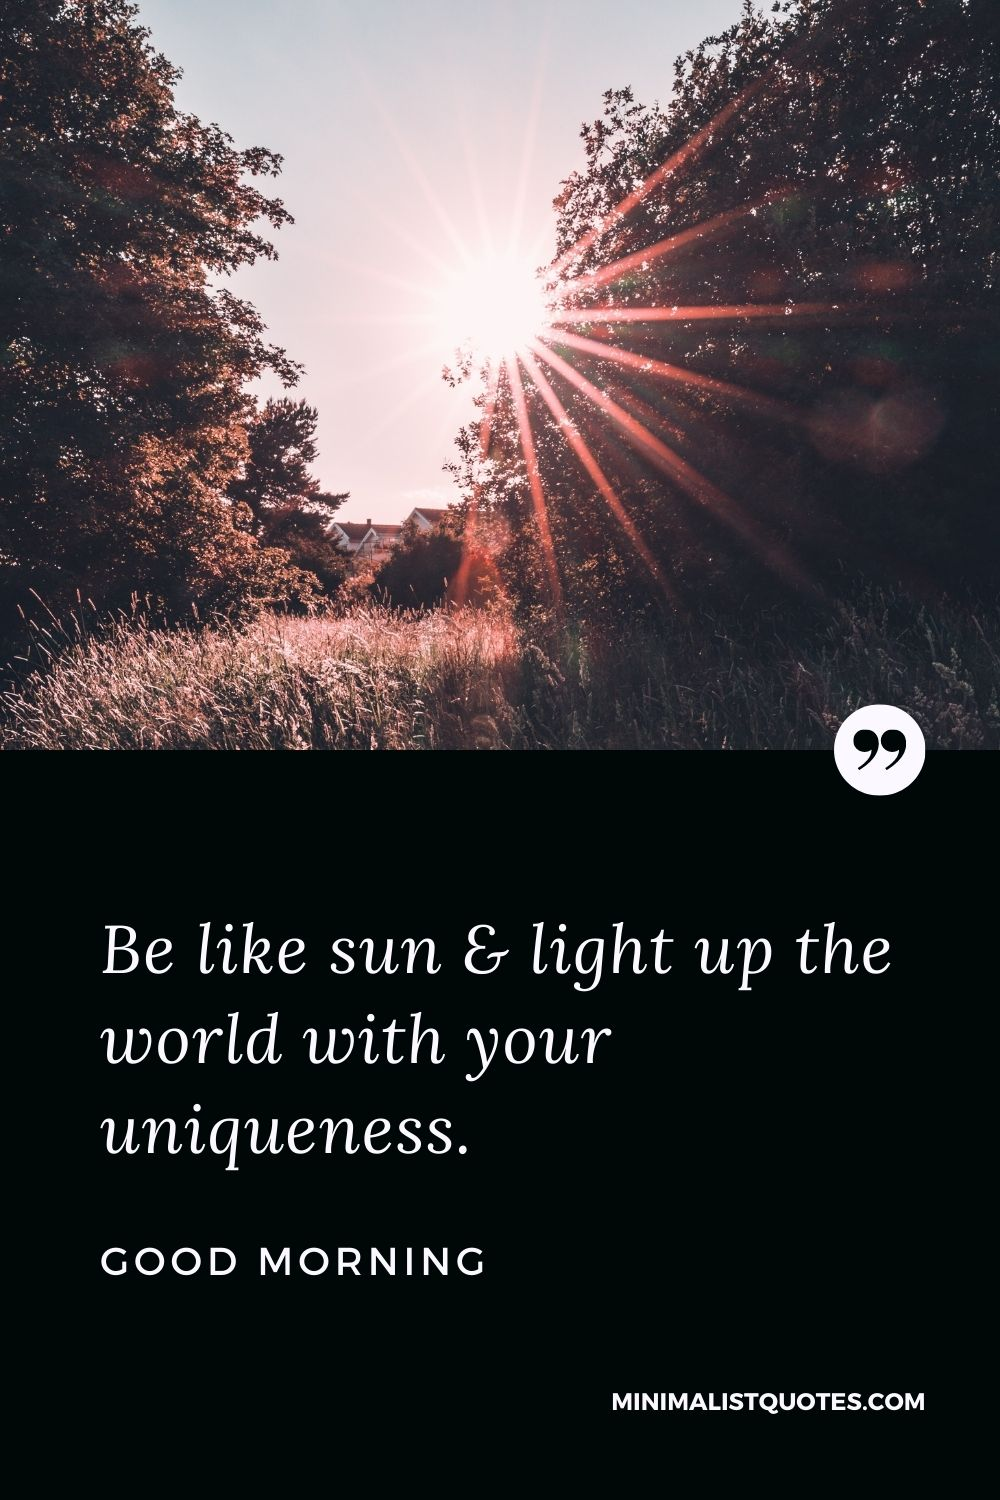 Good Morning Wish & Message With Image: Be like sun & light up the world with your uniqueness.